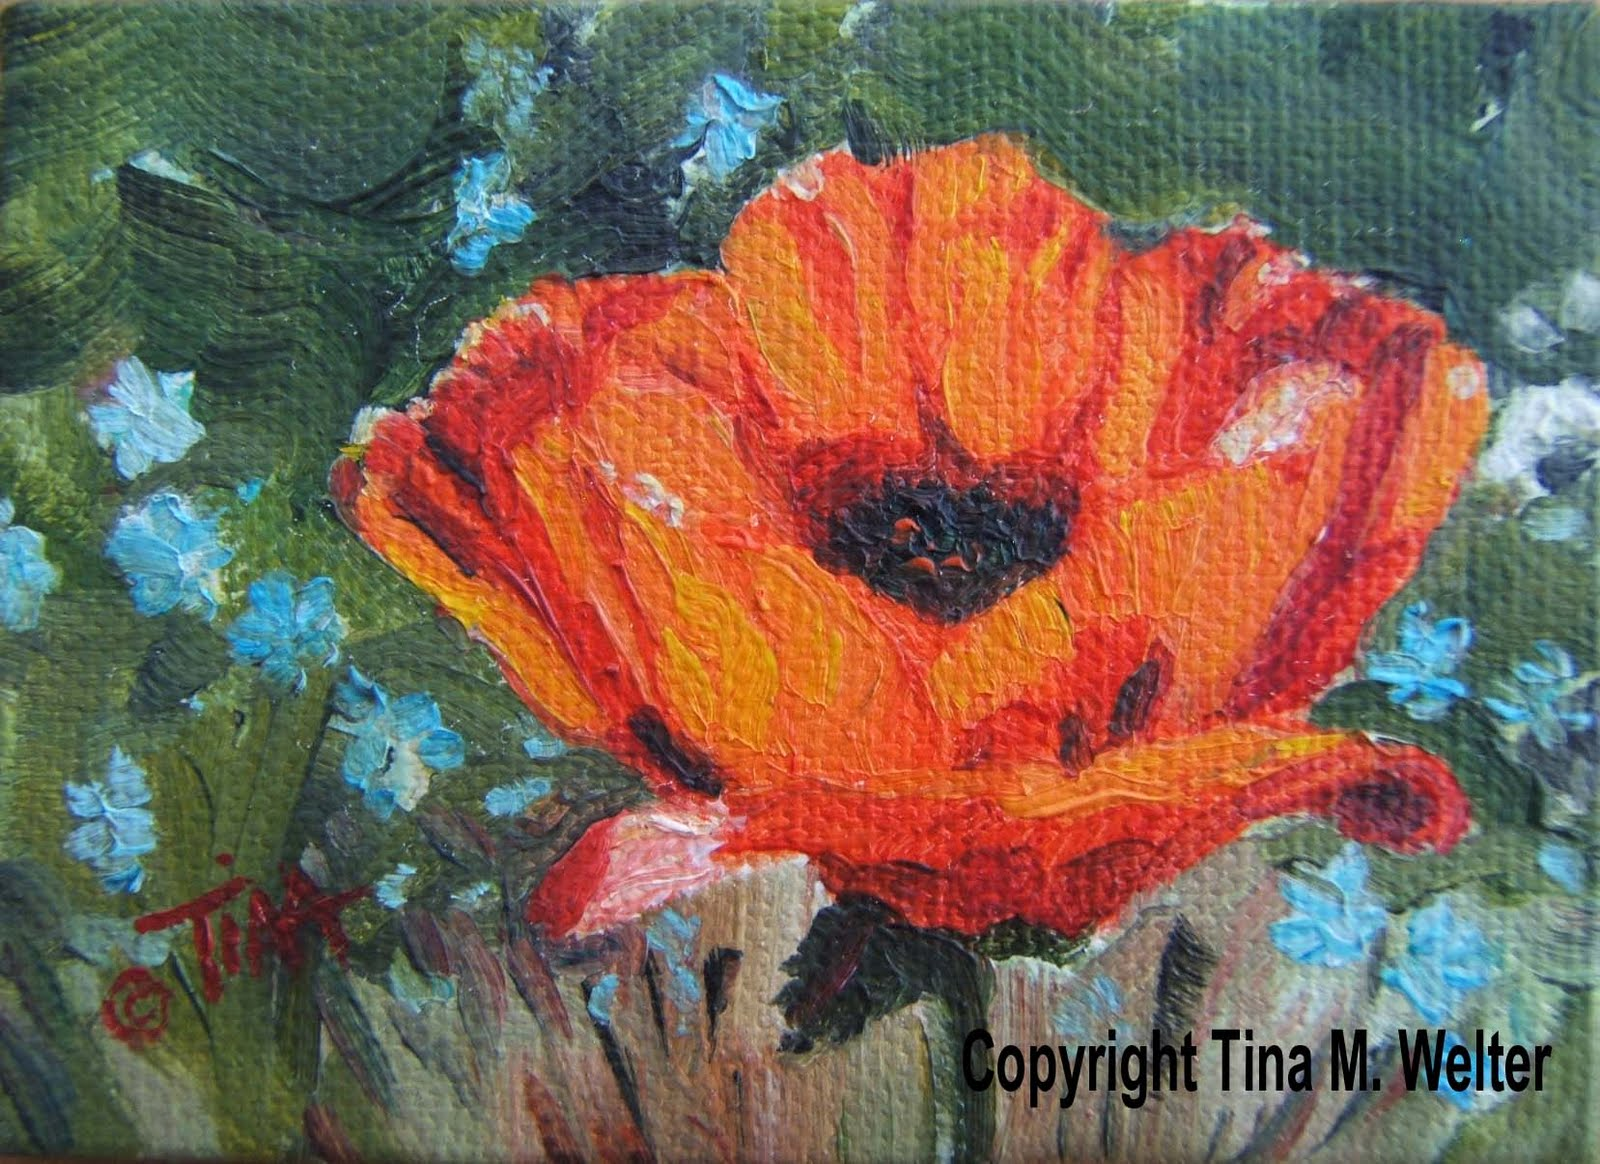 "2.5"" x 3.5"" oil on canvas, copyright 2010 Tina M. Welter"